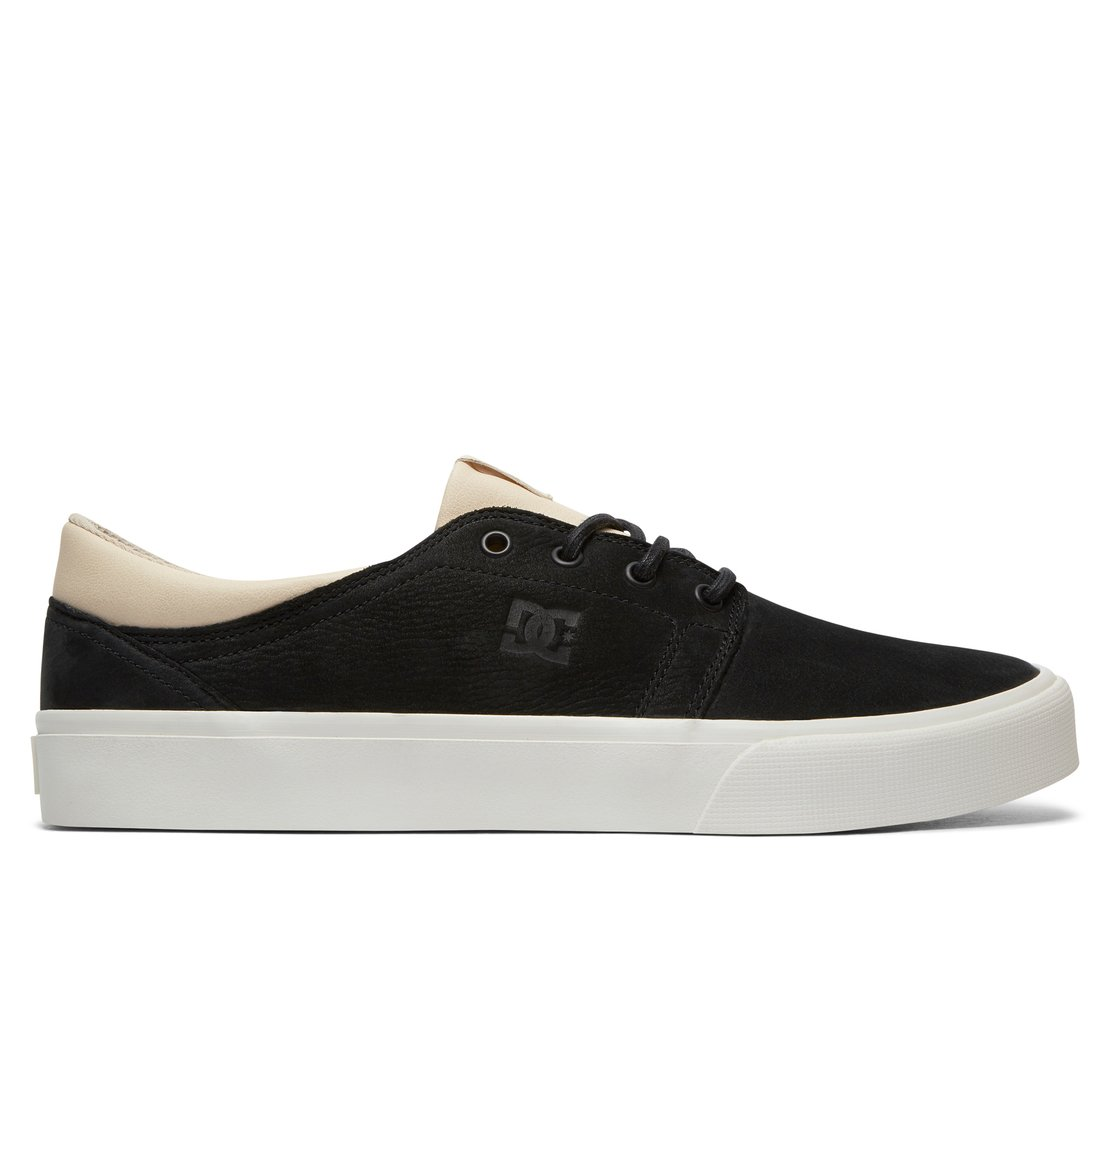 DC Shoes Trase SE - Shoes - Zapatos - Hombre - EU 44